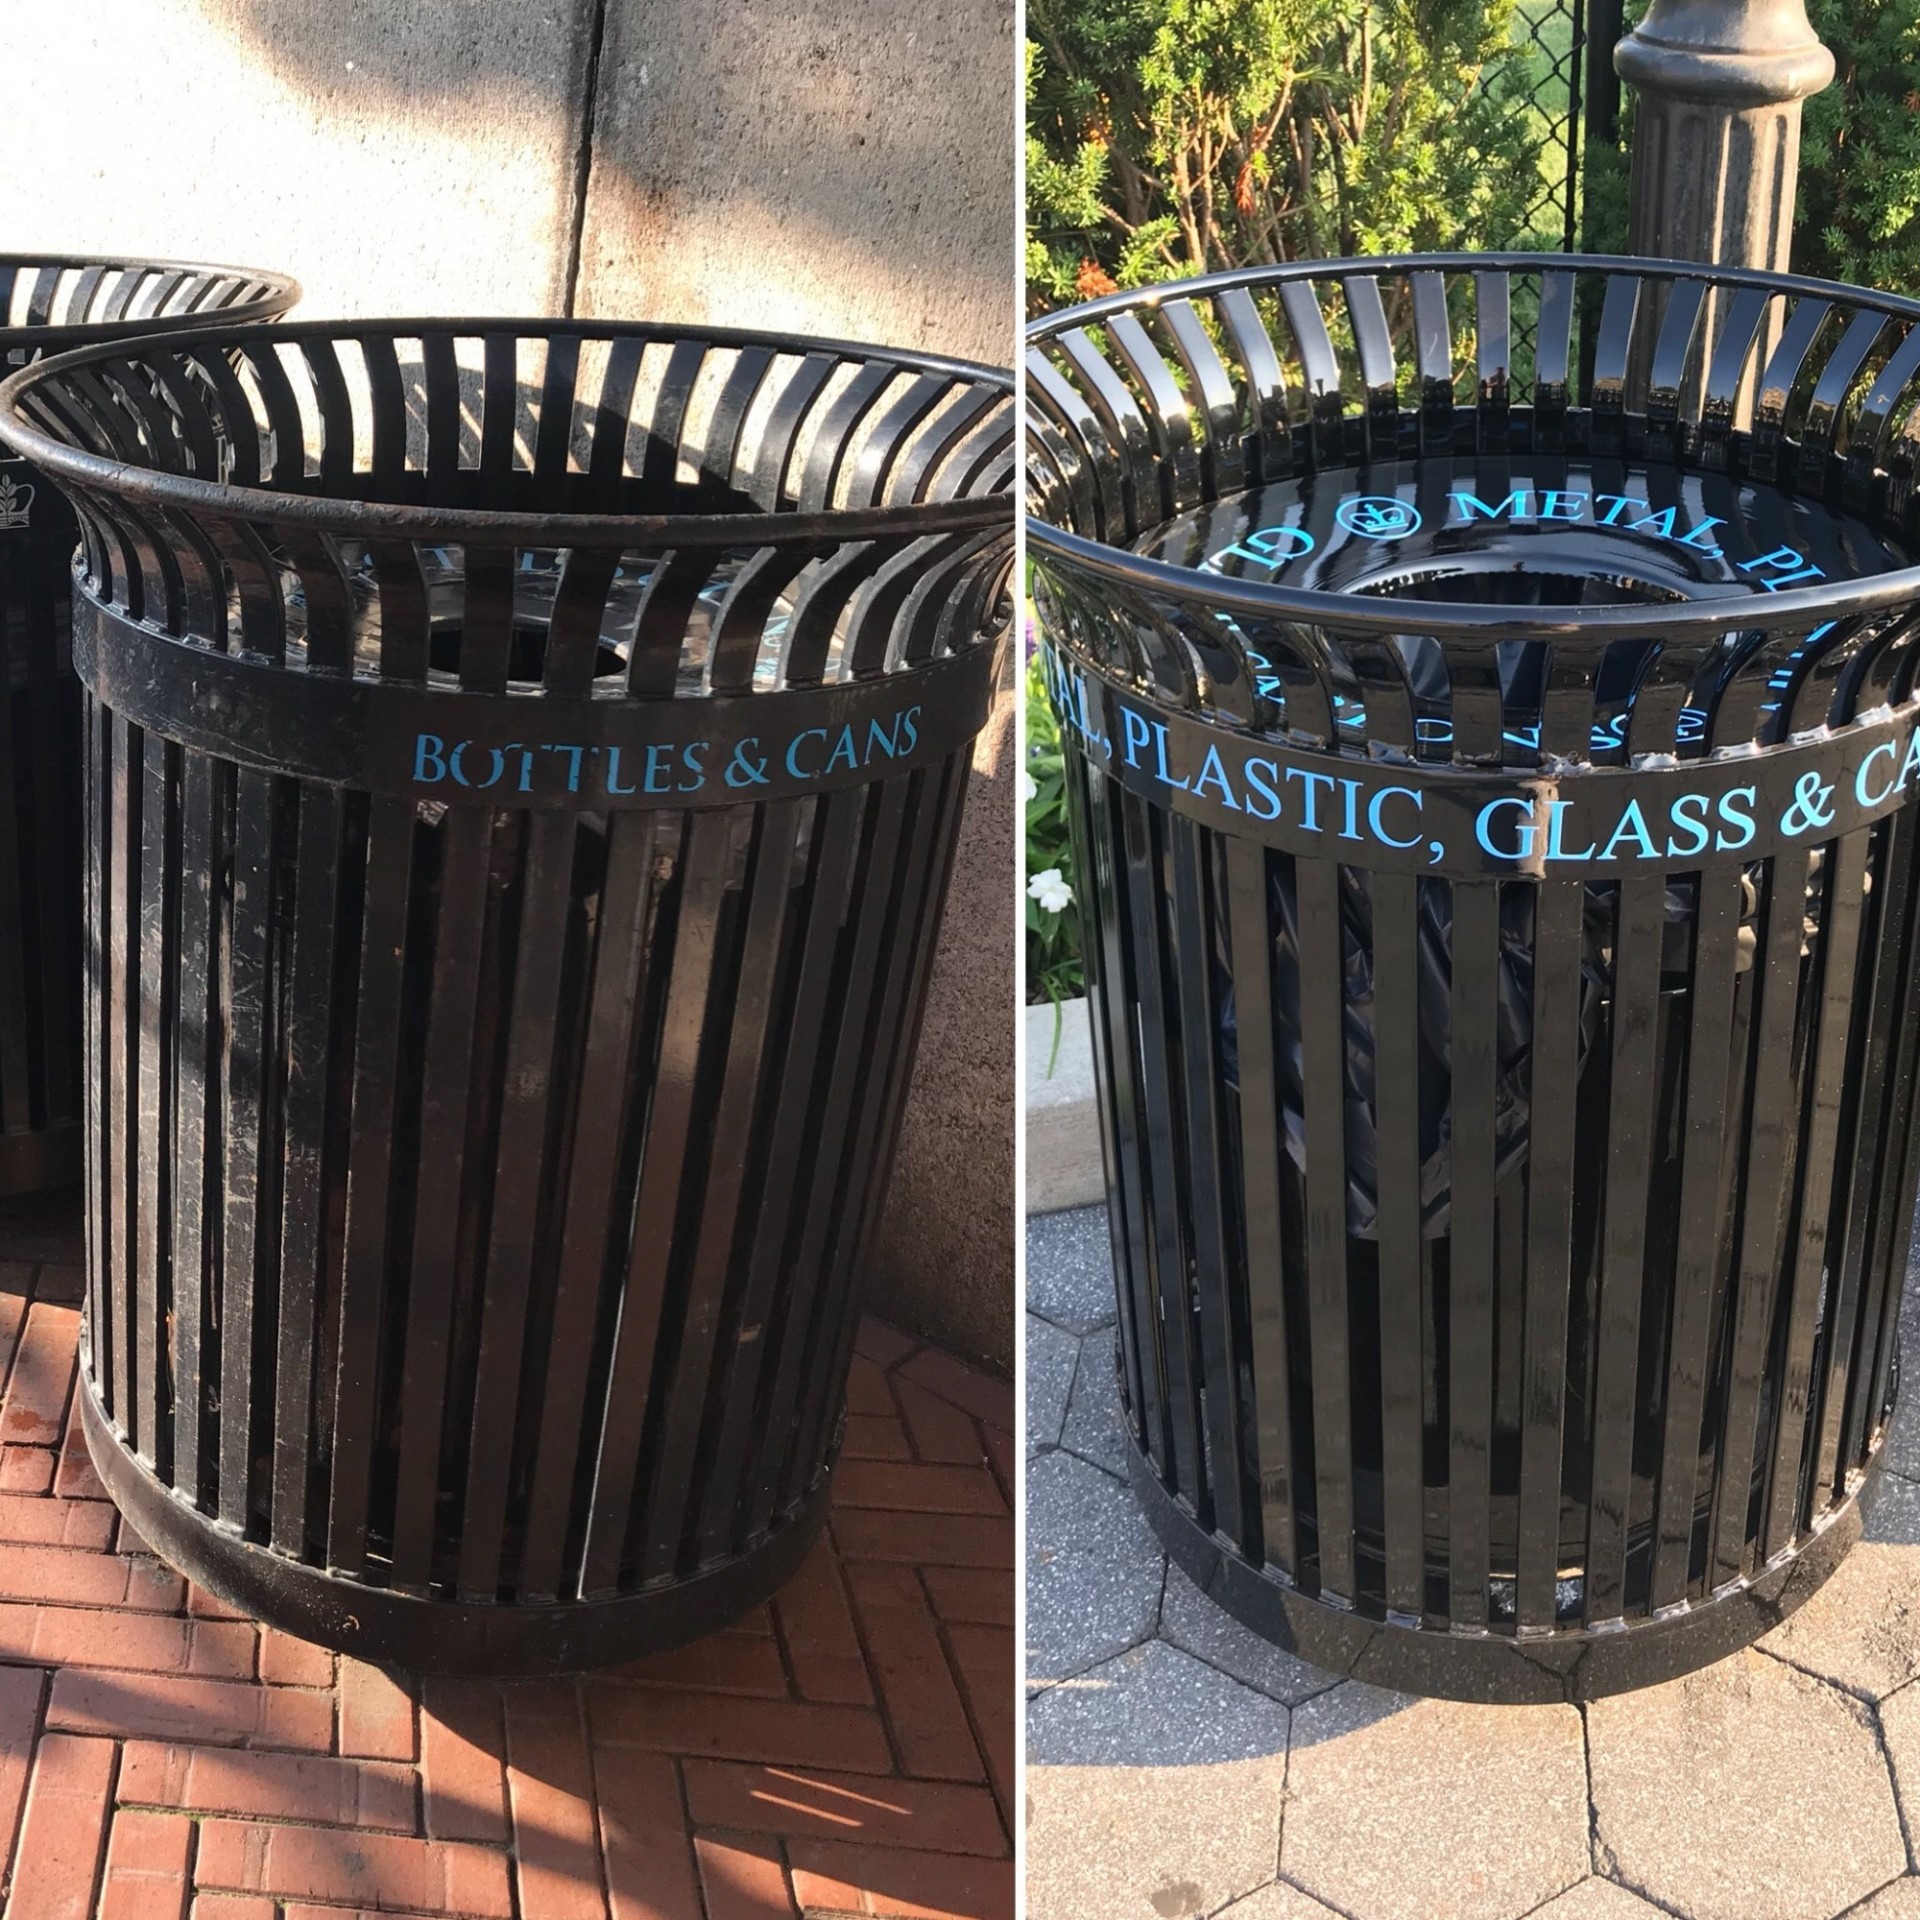 A before and after comparison of the metal/glass/plastic/cartons receptacle